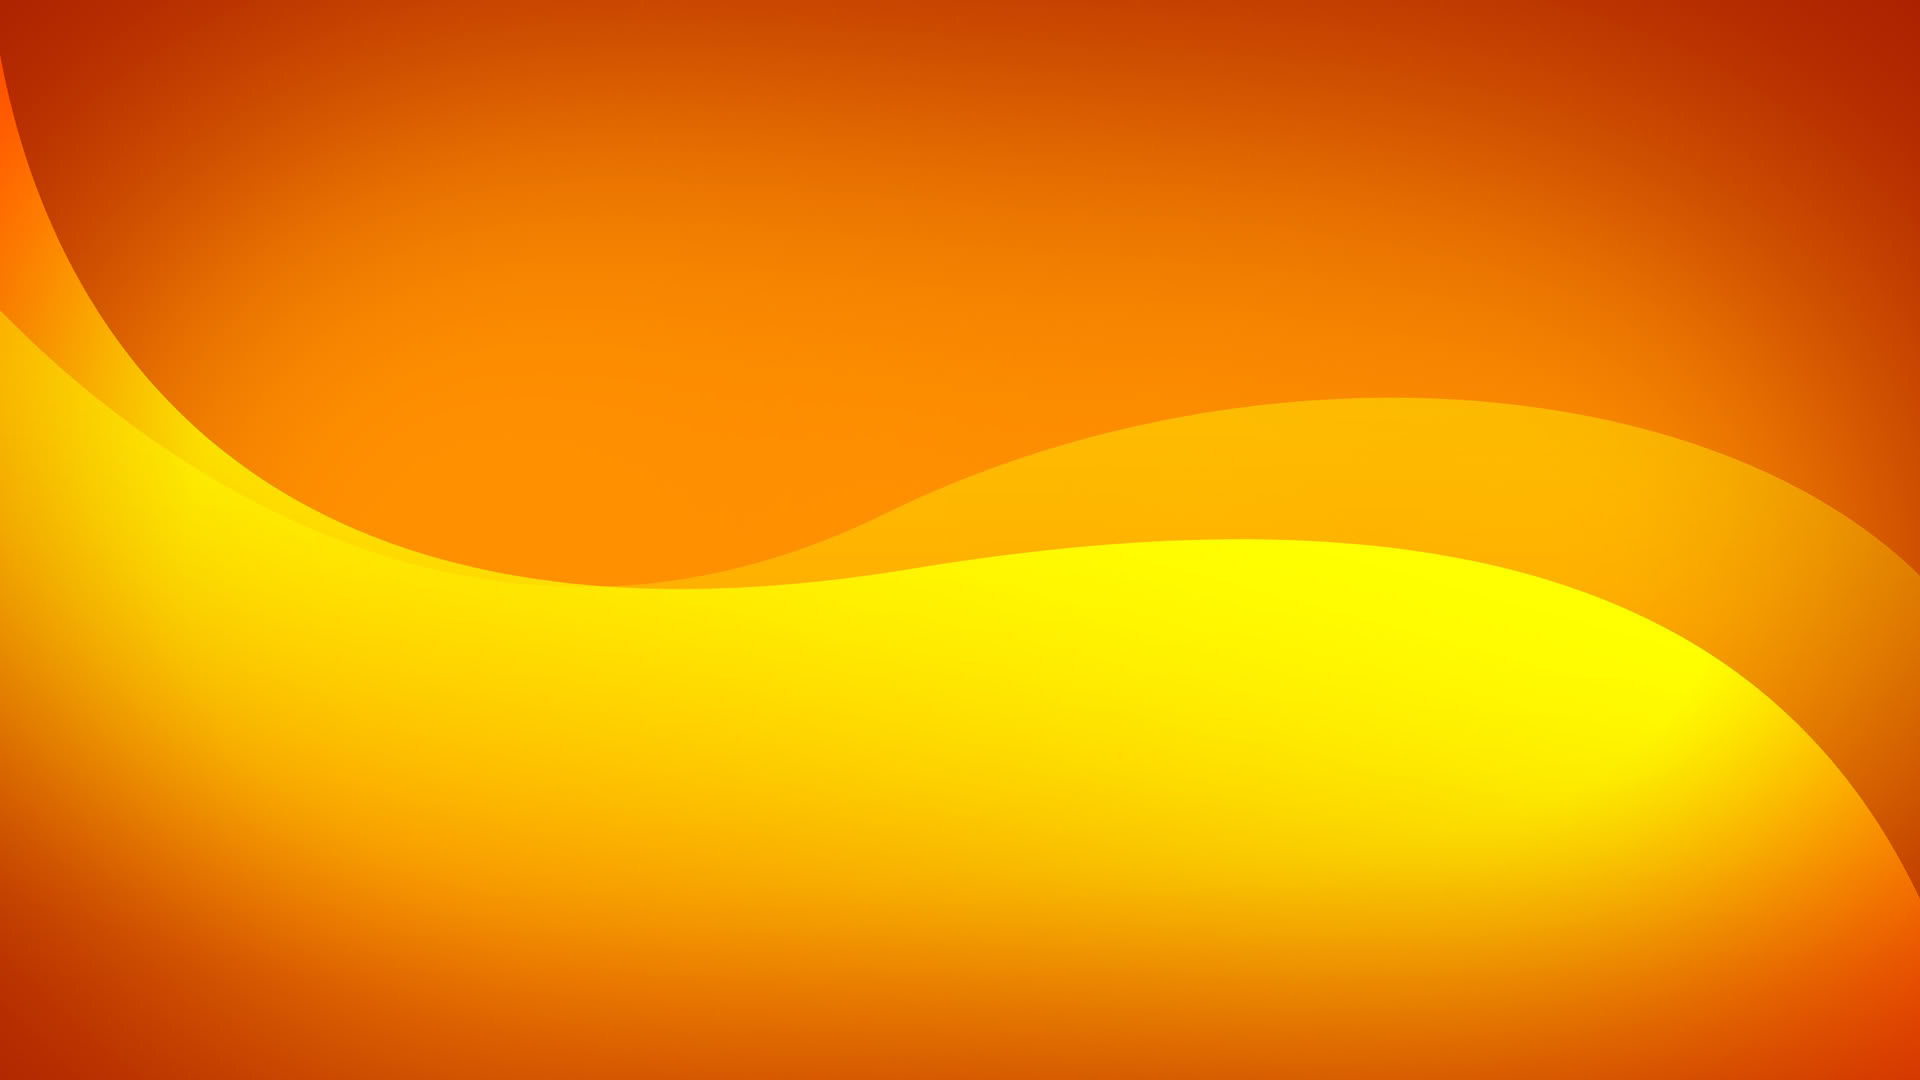 Orange on Orange Wallpapers